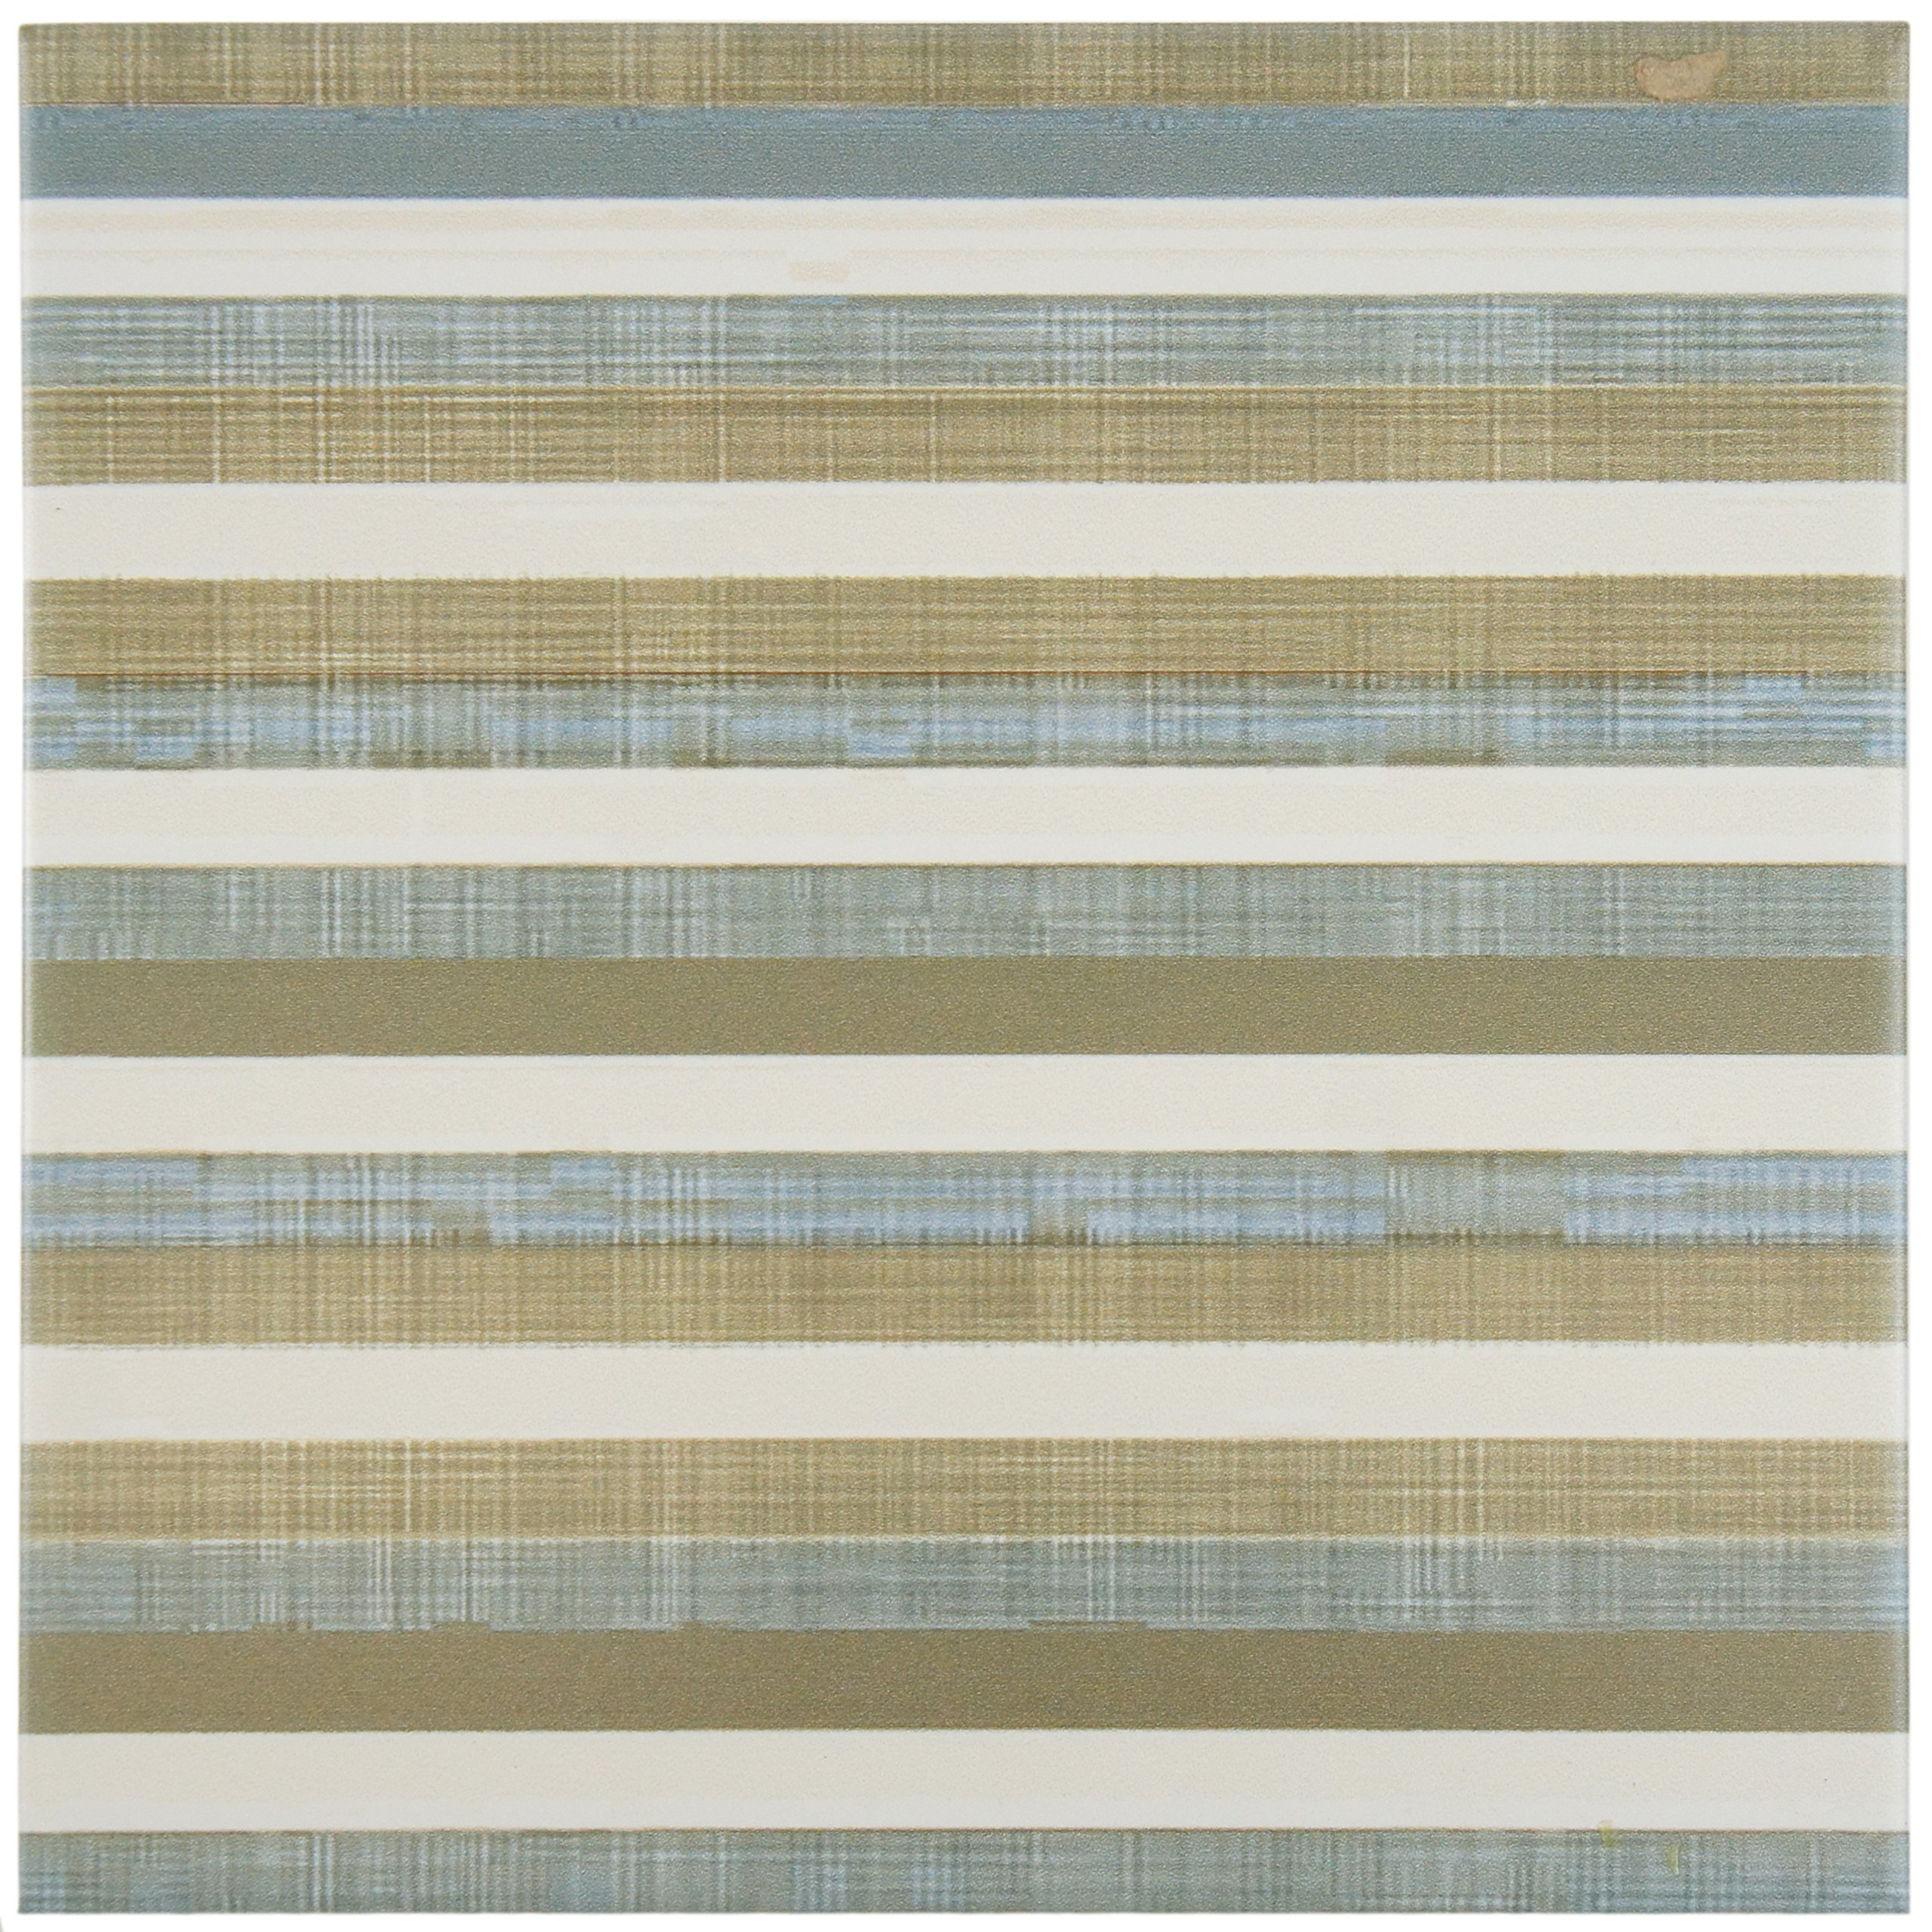 SomerTile FRC8BOHL Turin Ceramic Floor and Wall Tile, 7.75'' x 7.75'', Beige/Brown/Blue